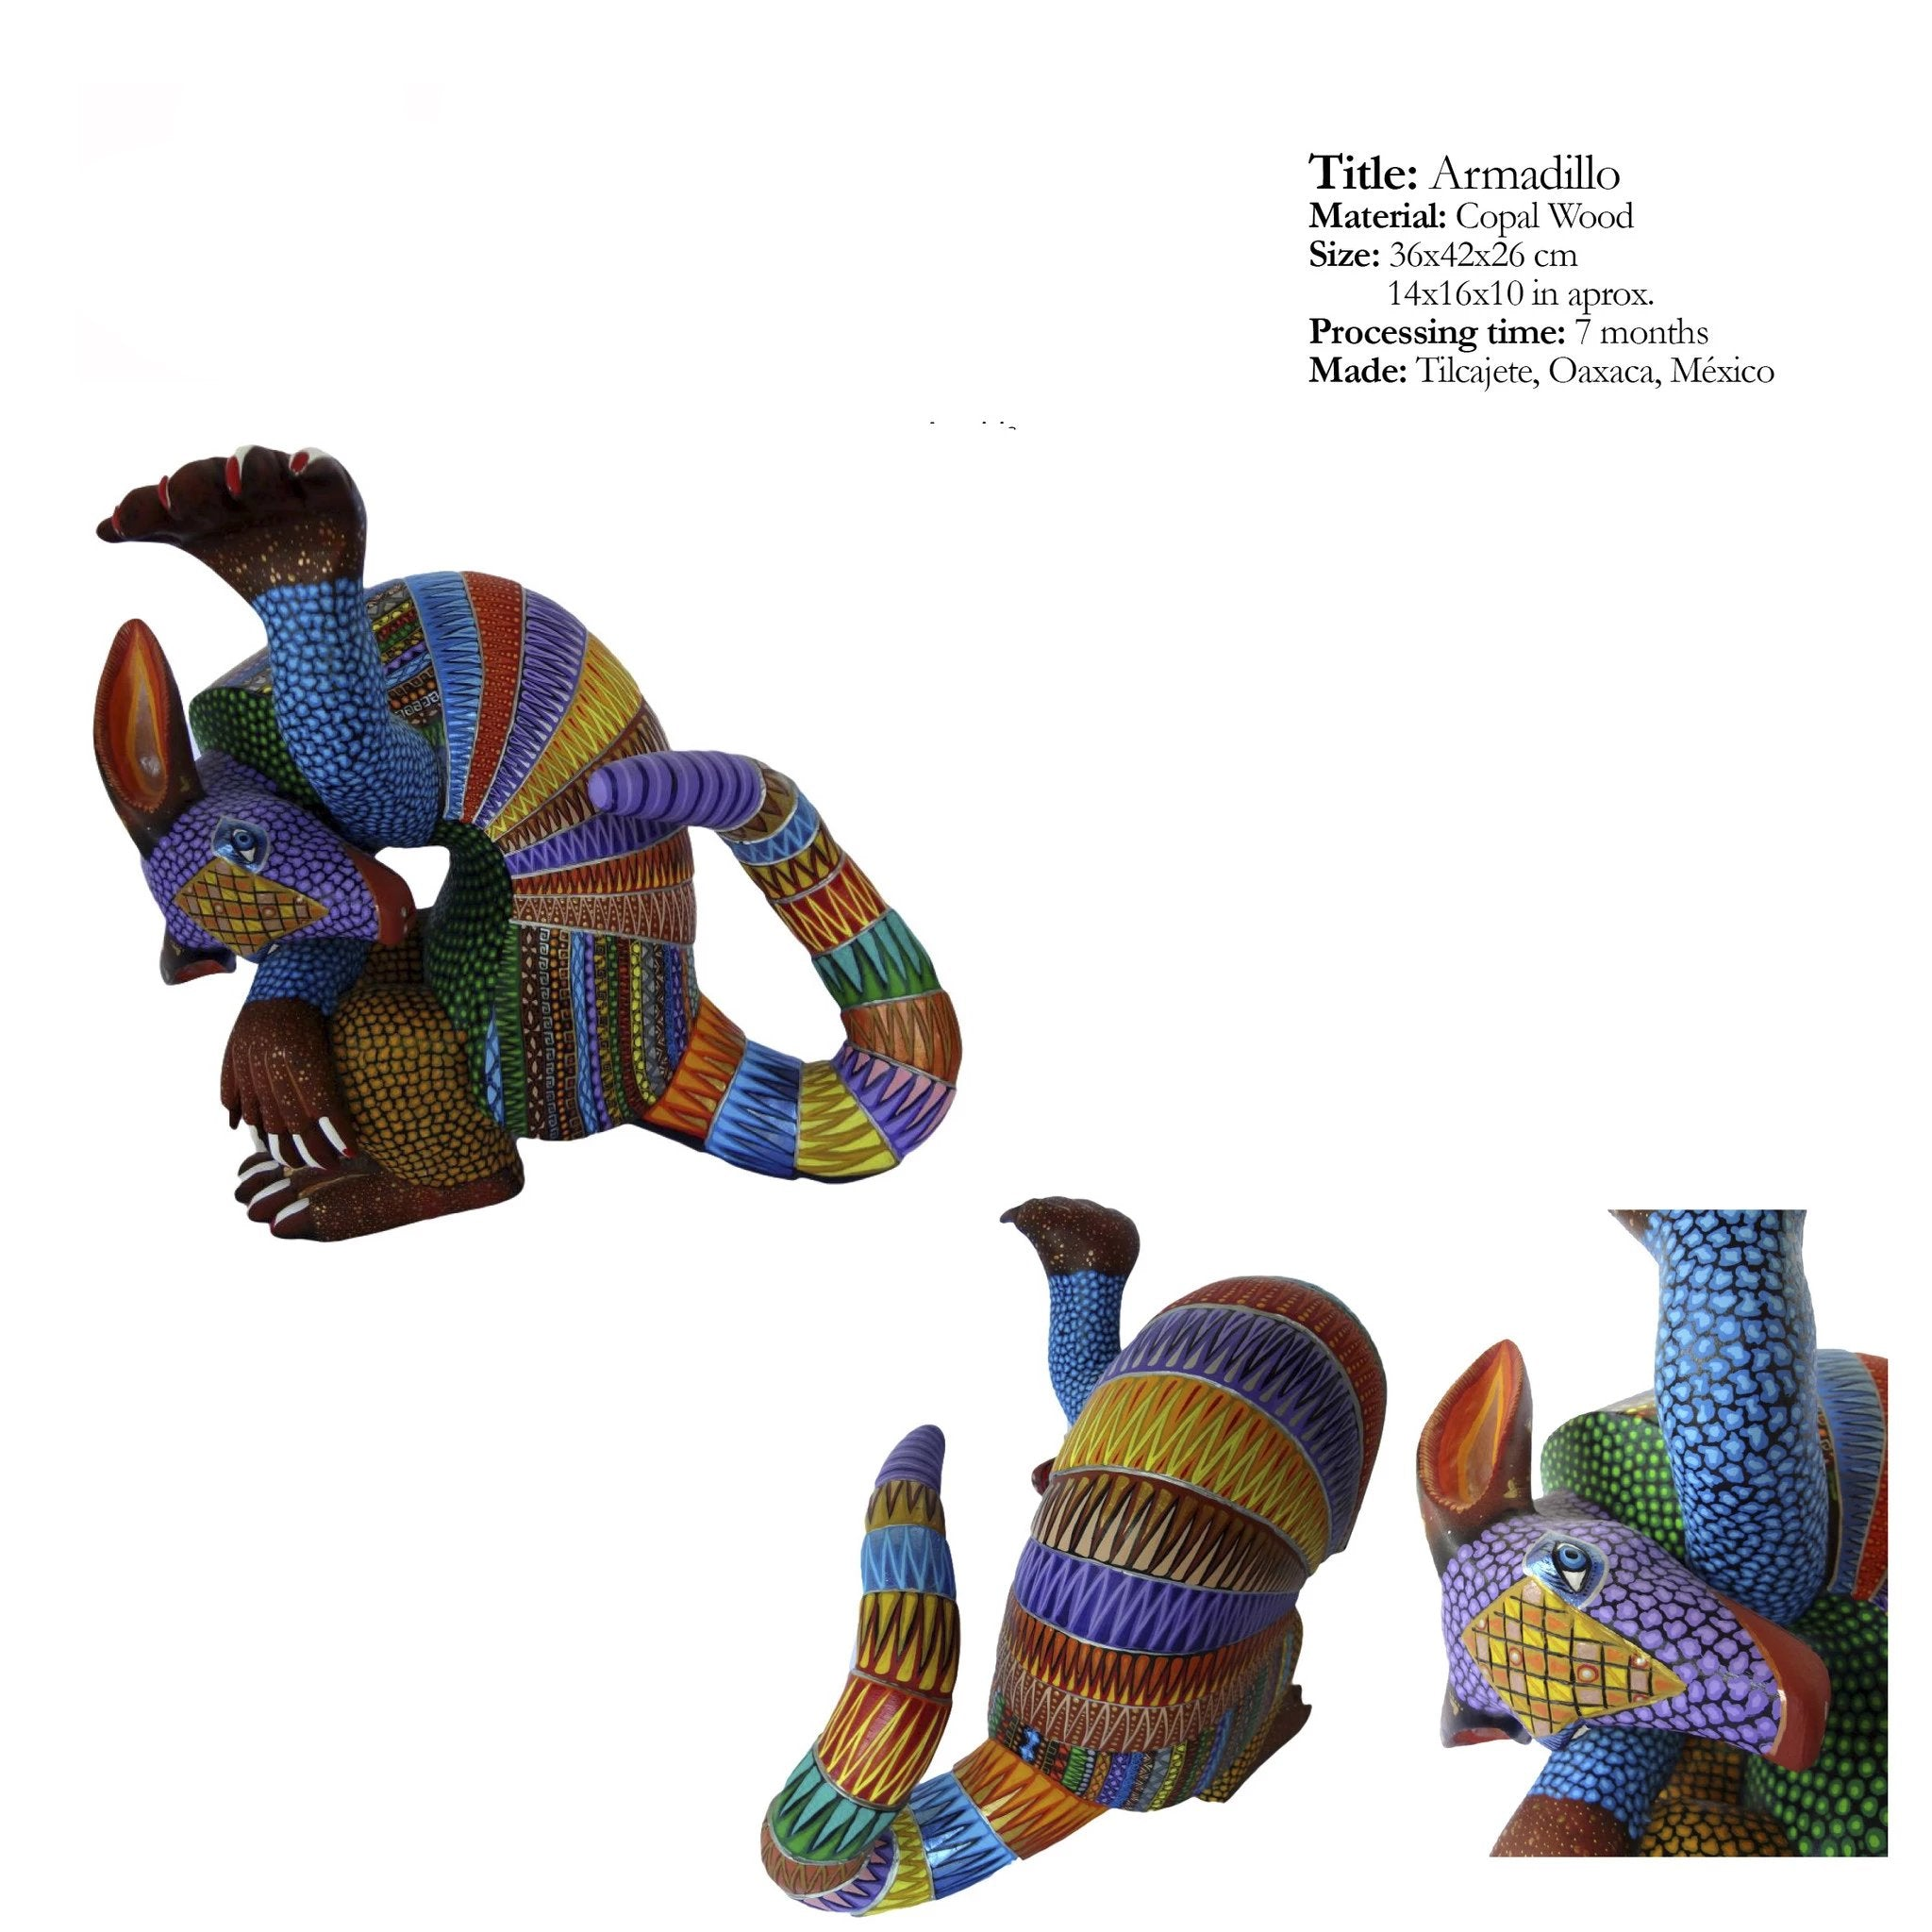 Armadillo - Average Quality Alebrijes